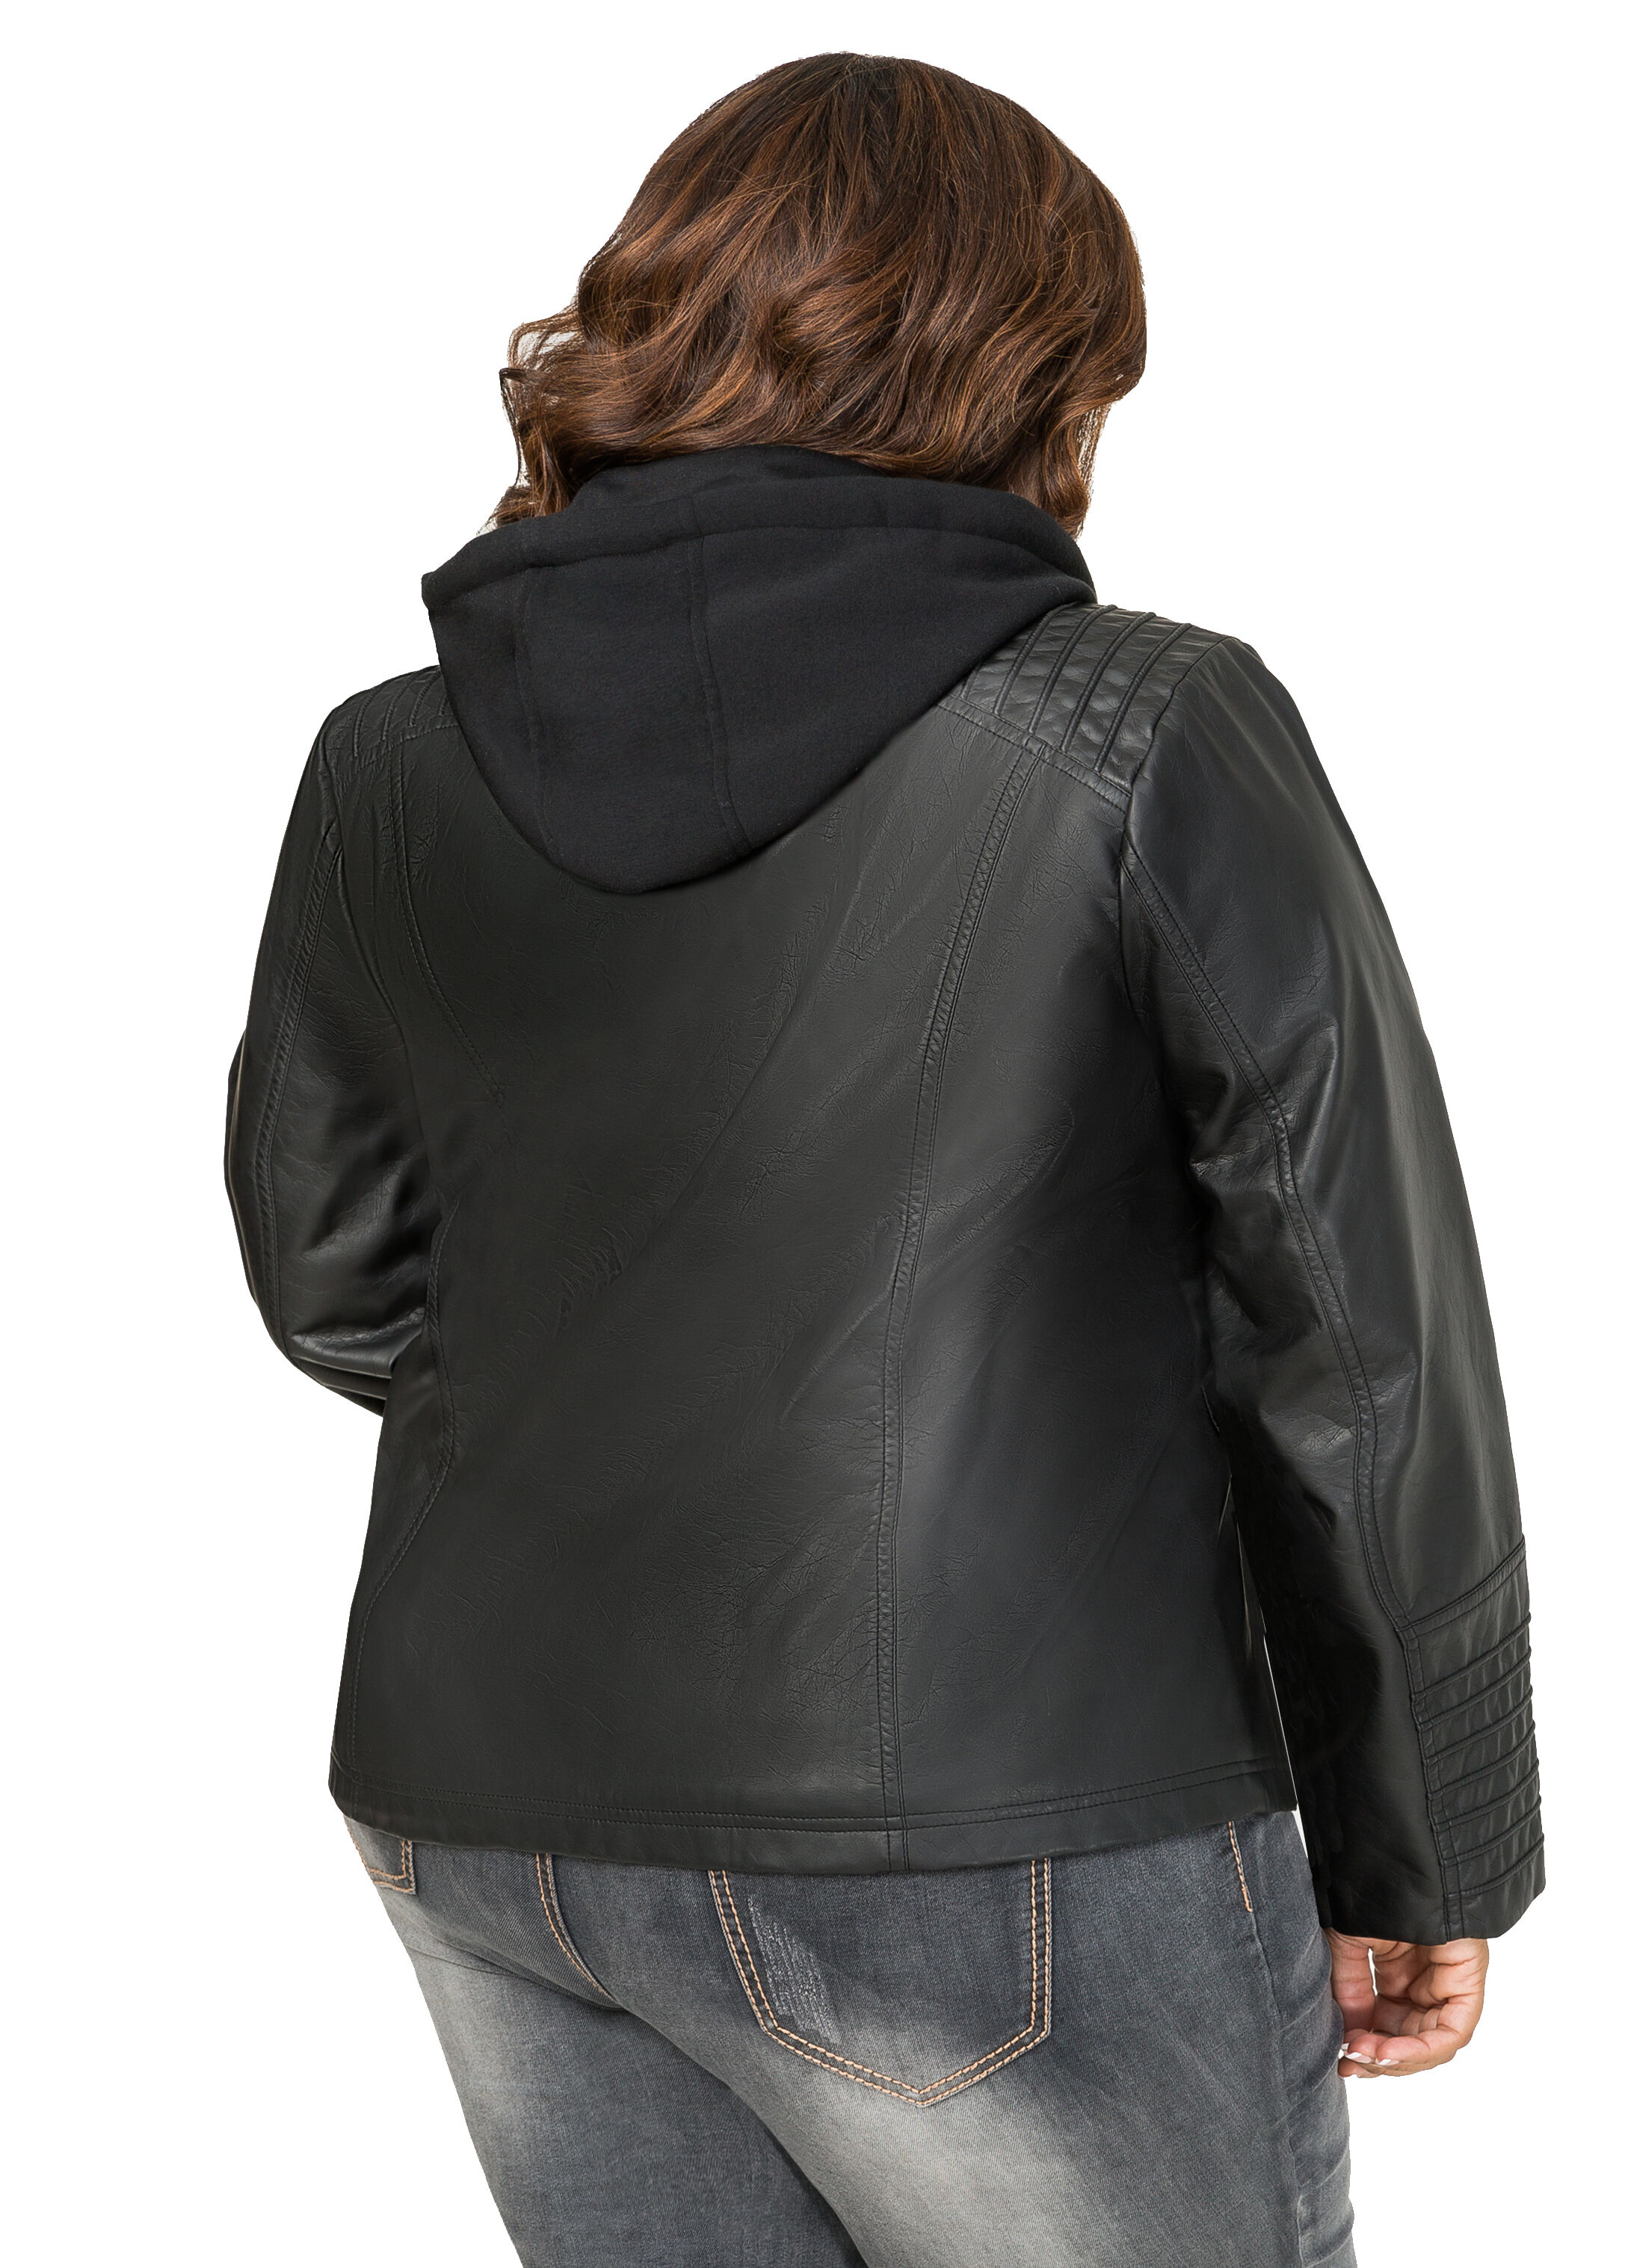 Hoodie Insert Faux Leather Jacket